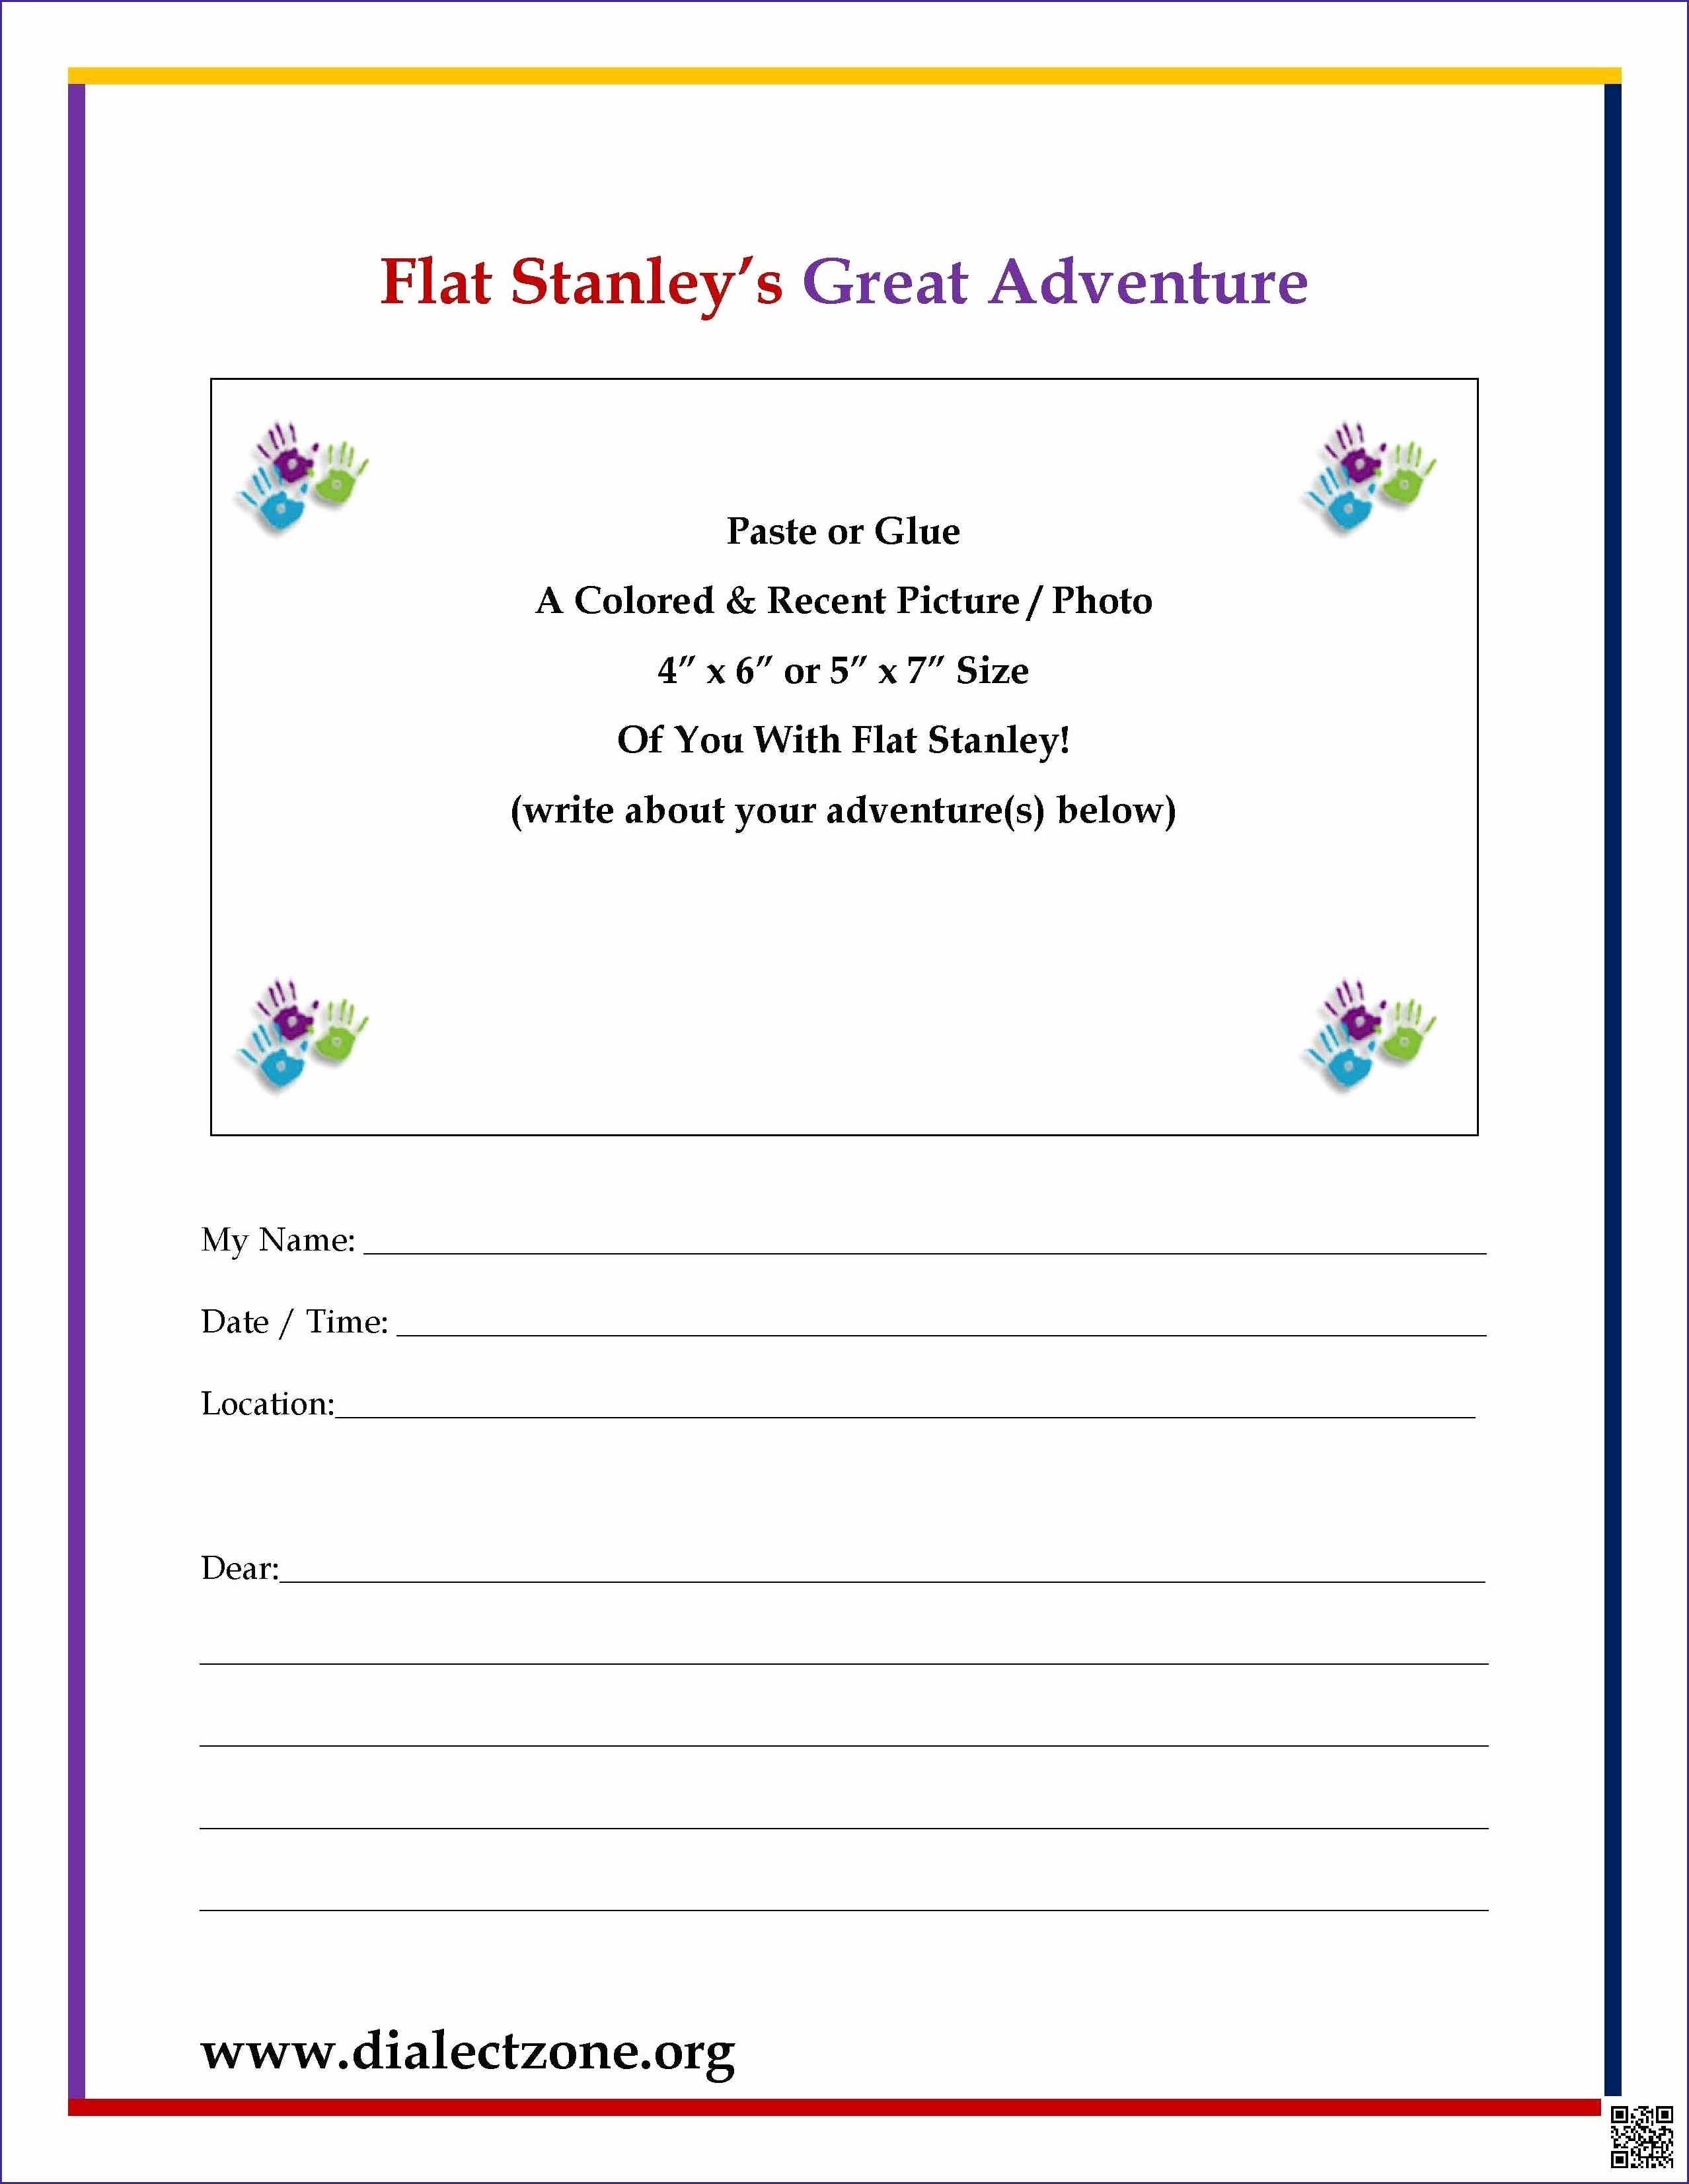 Flat Stanley Letter Template - soft Corporate Offer Template